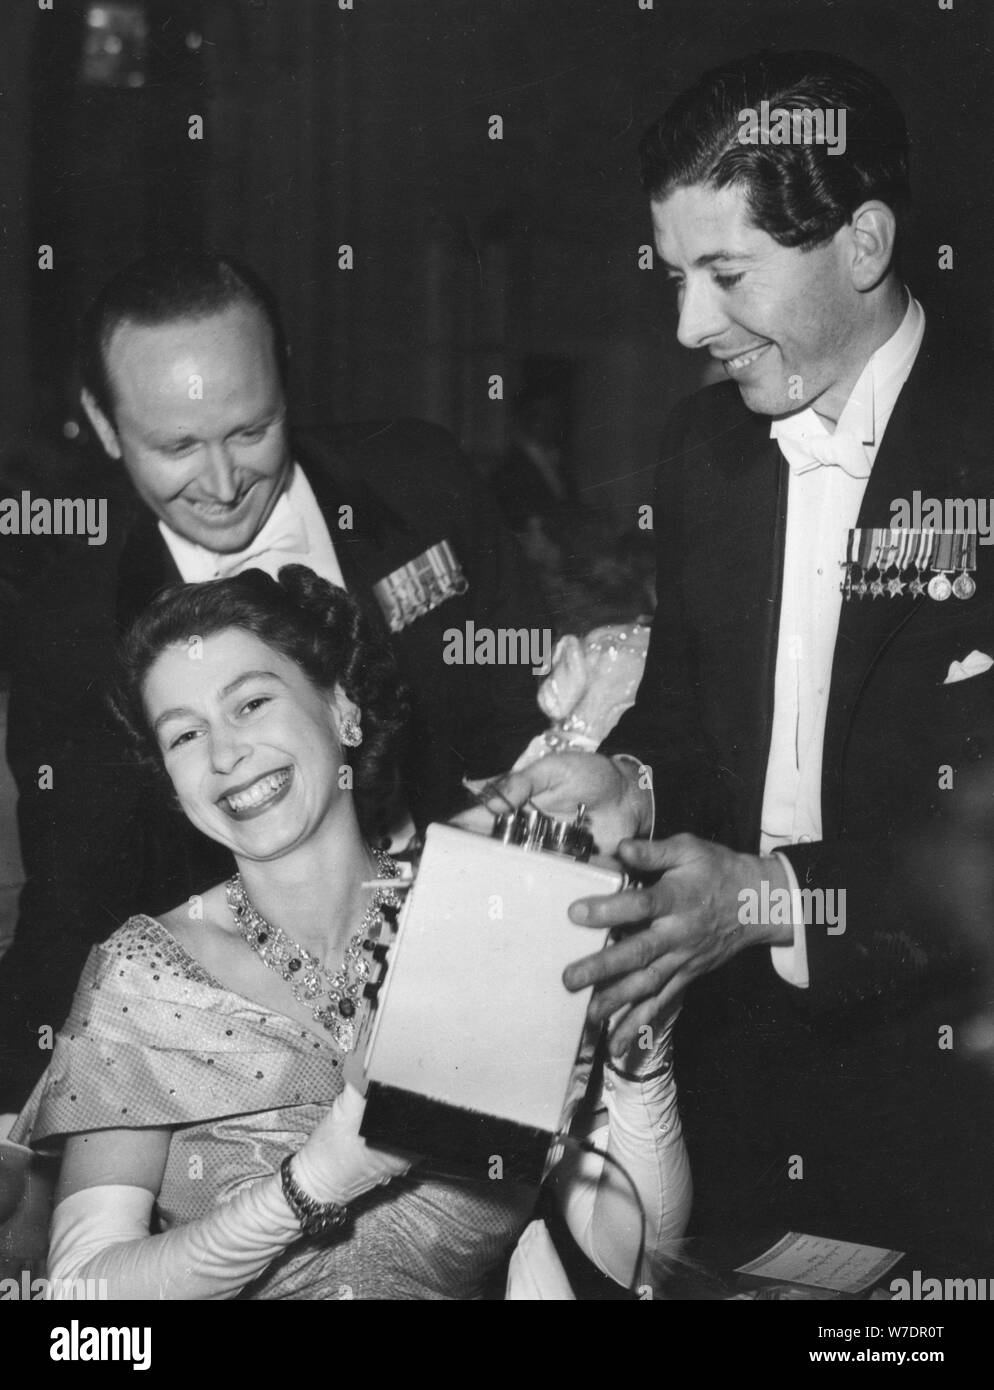 Princess Elizabeth receives a toy stove for Prince Charlesat the Flower Ball, Savoy Hotel, 1951. Artist: Unknown Stock Photo